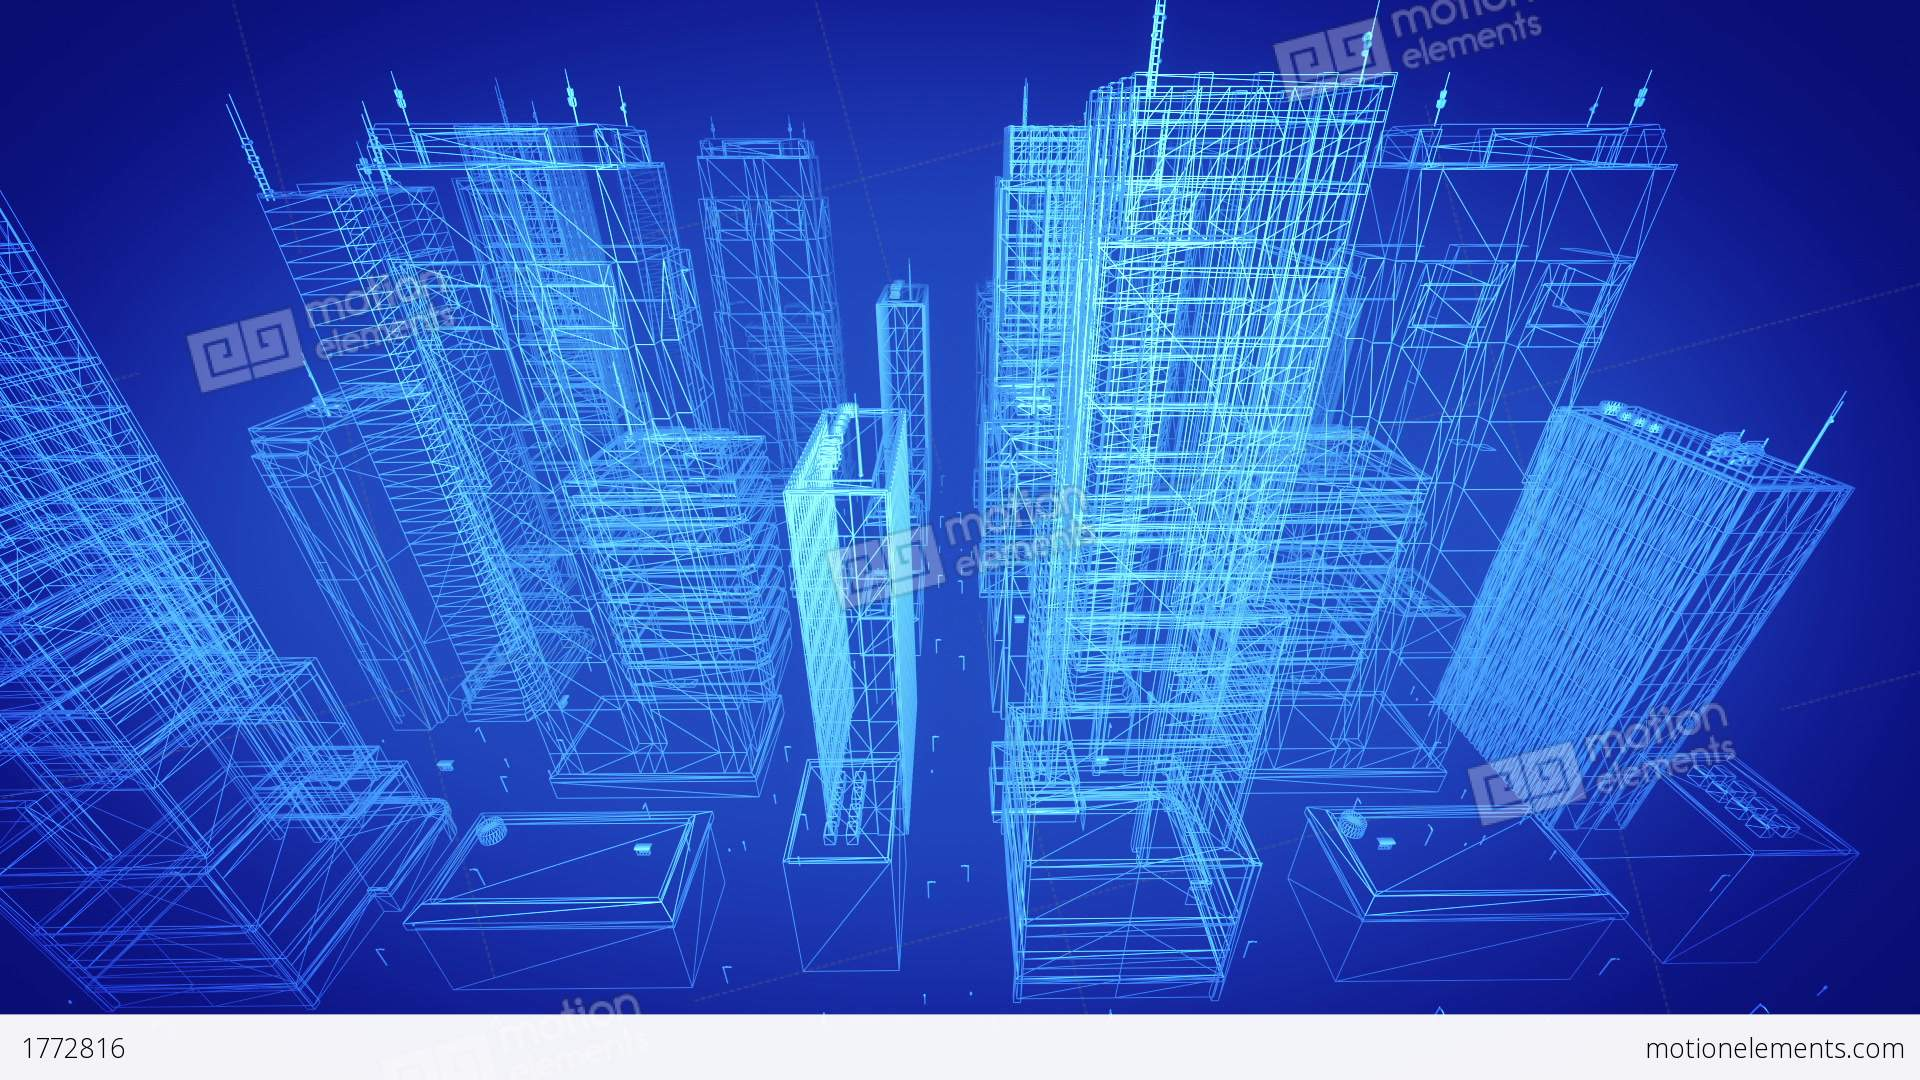 Architectural blueprint of contemporary buildings blue tint stock architectural blueprint of contemporary buildings blue tint stock video footage malvernweather